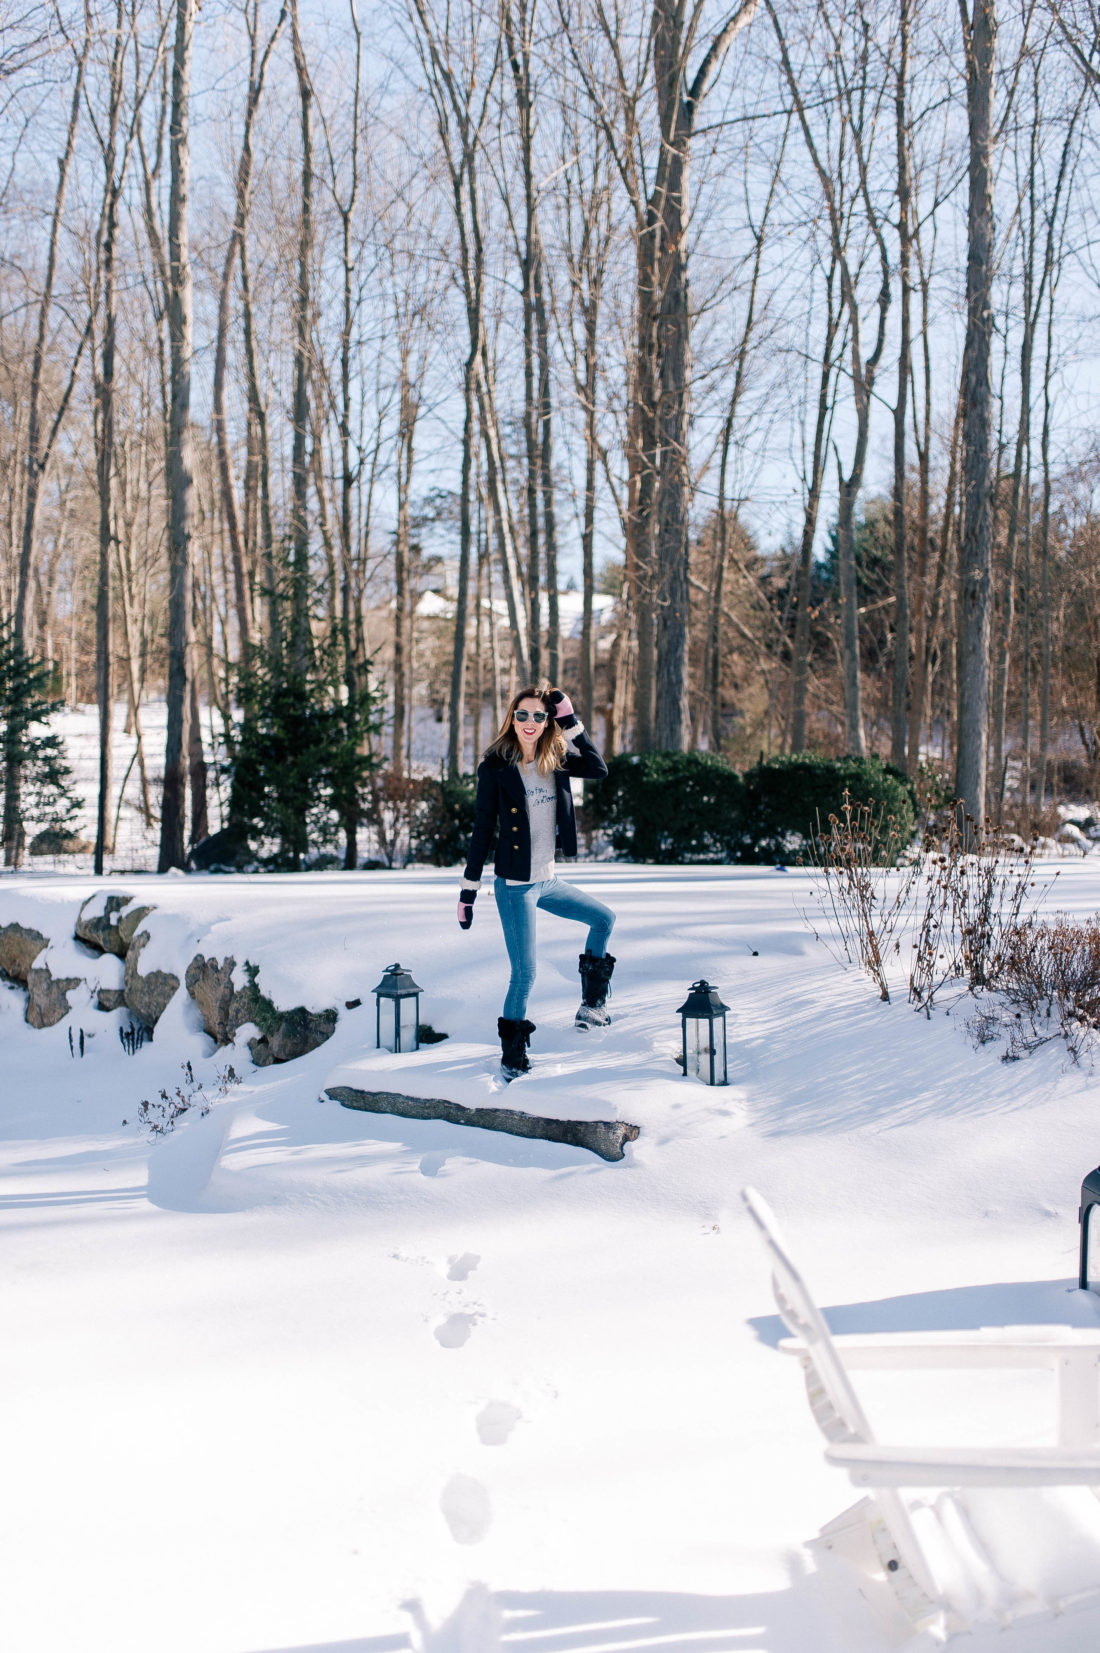 Eva Amurri Martino bundles up and enjoys the snow in the yard outside her Connecticut home